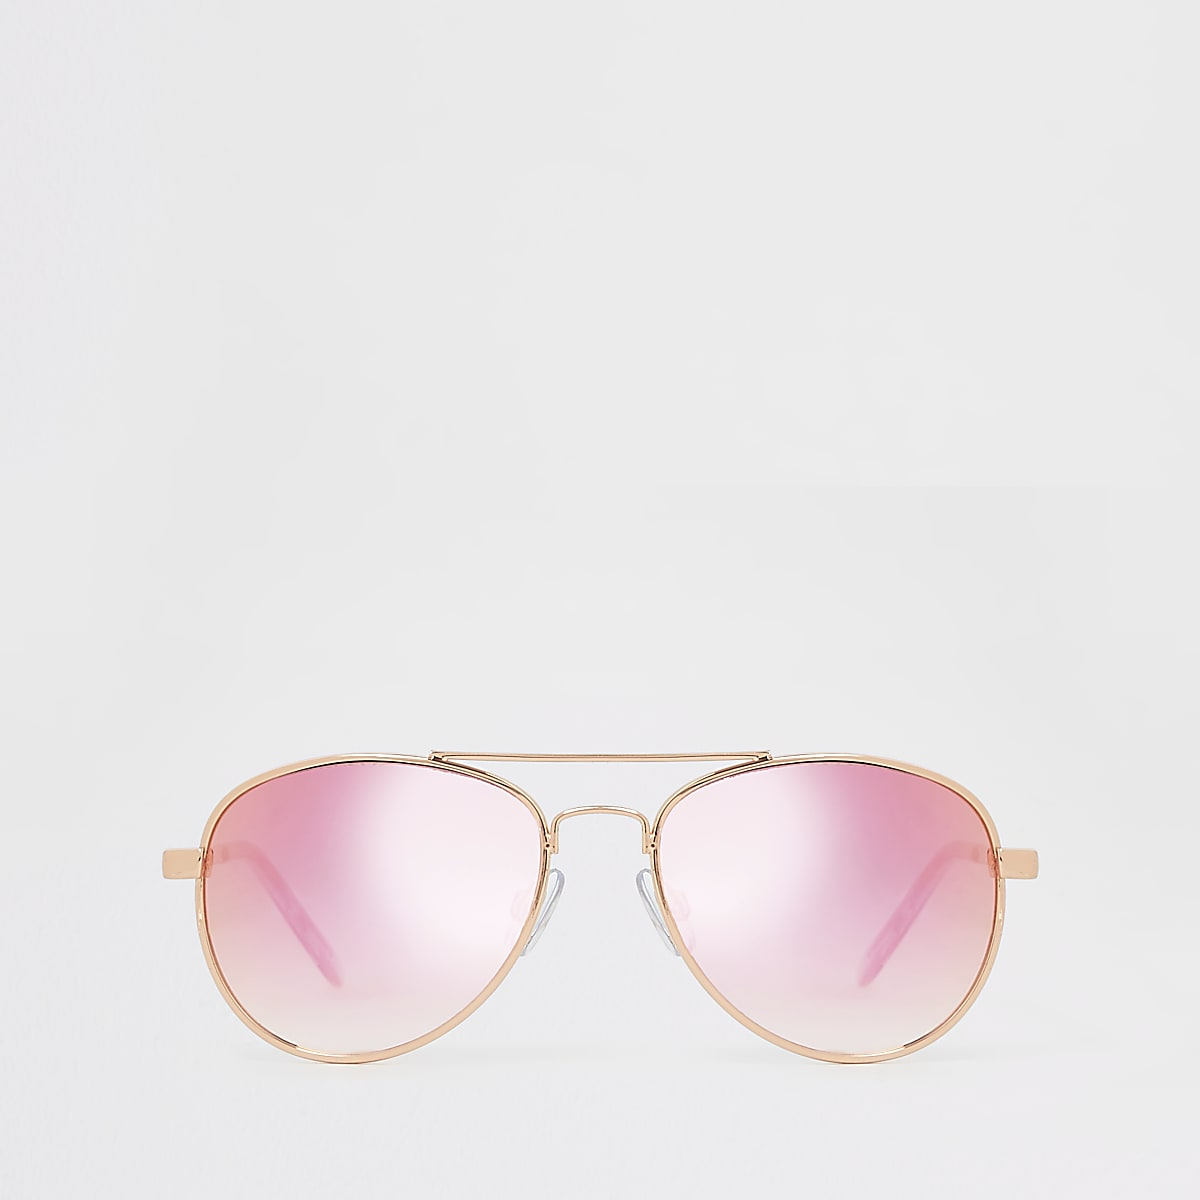 Girls rose gold aviator sunglasses